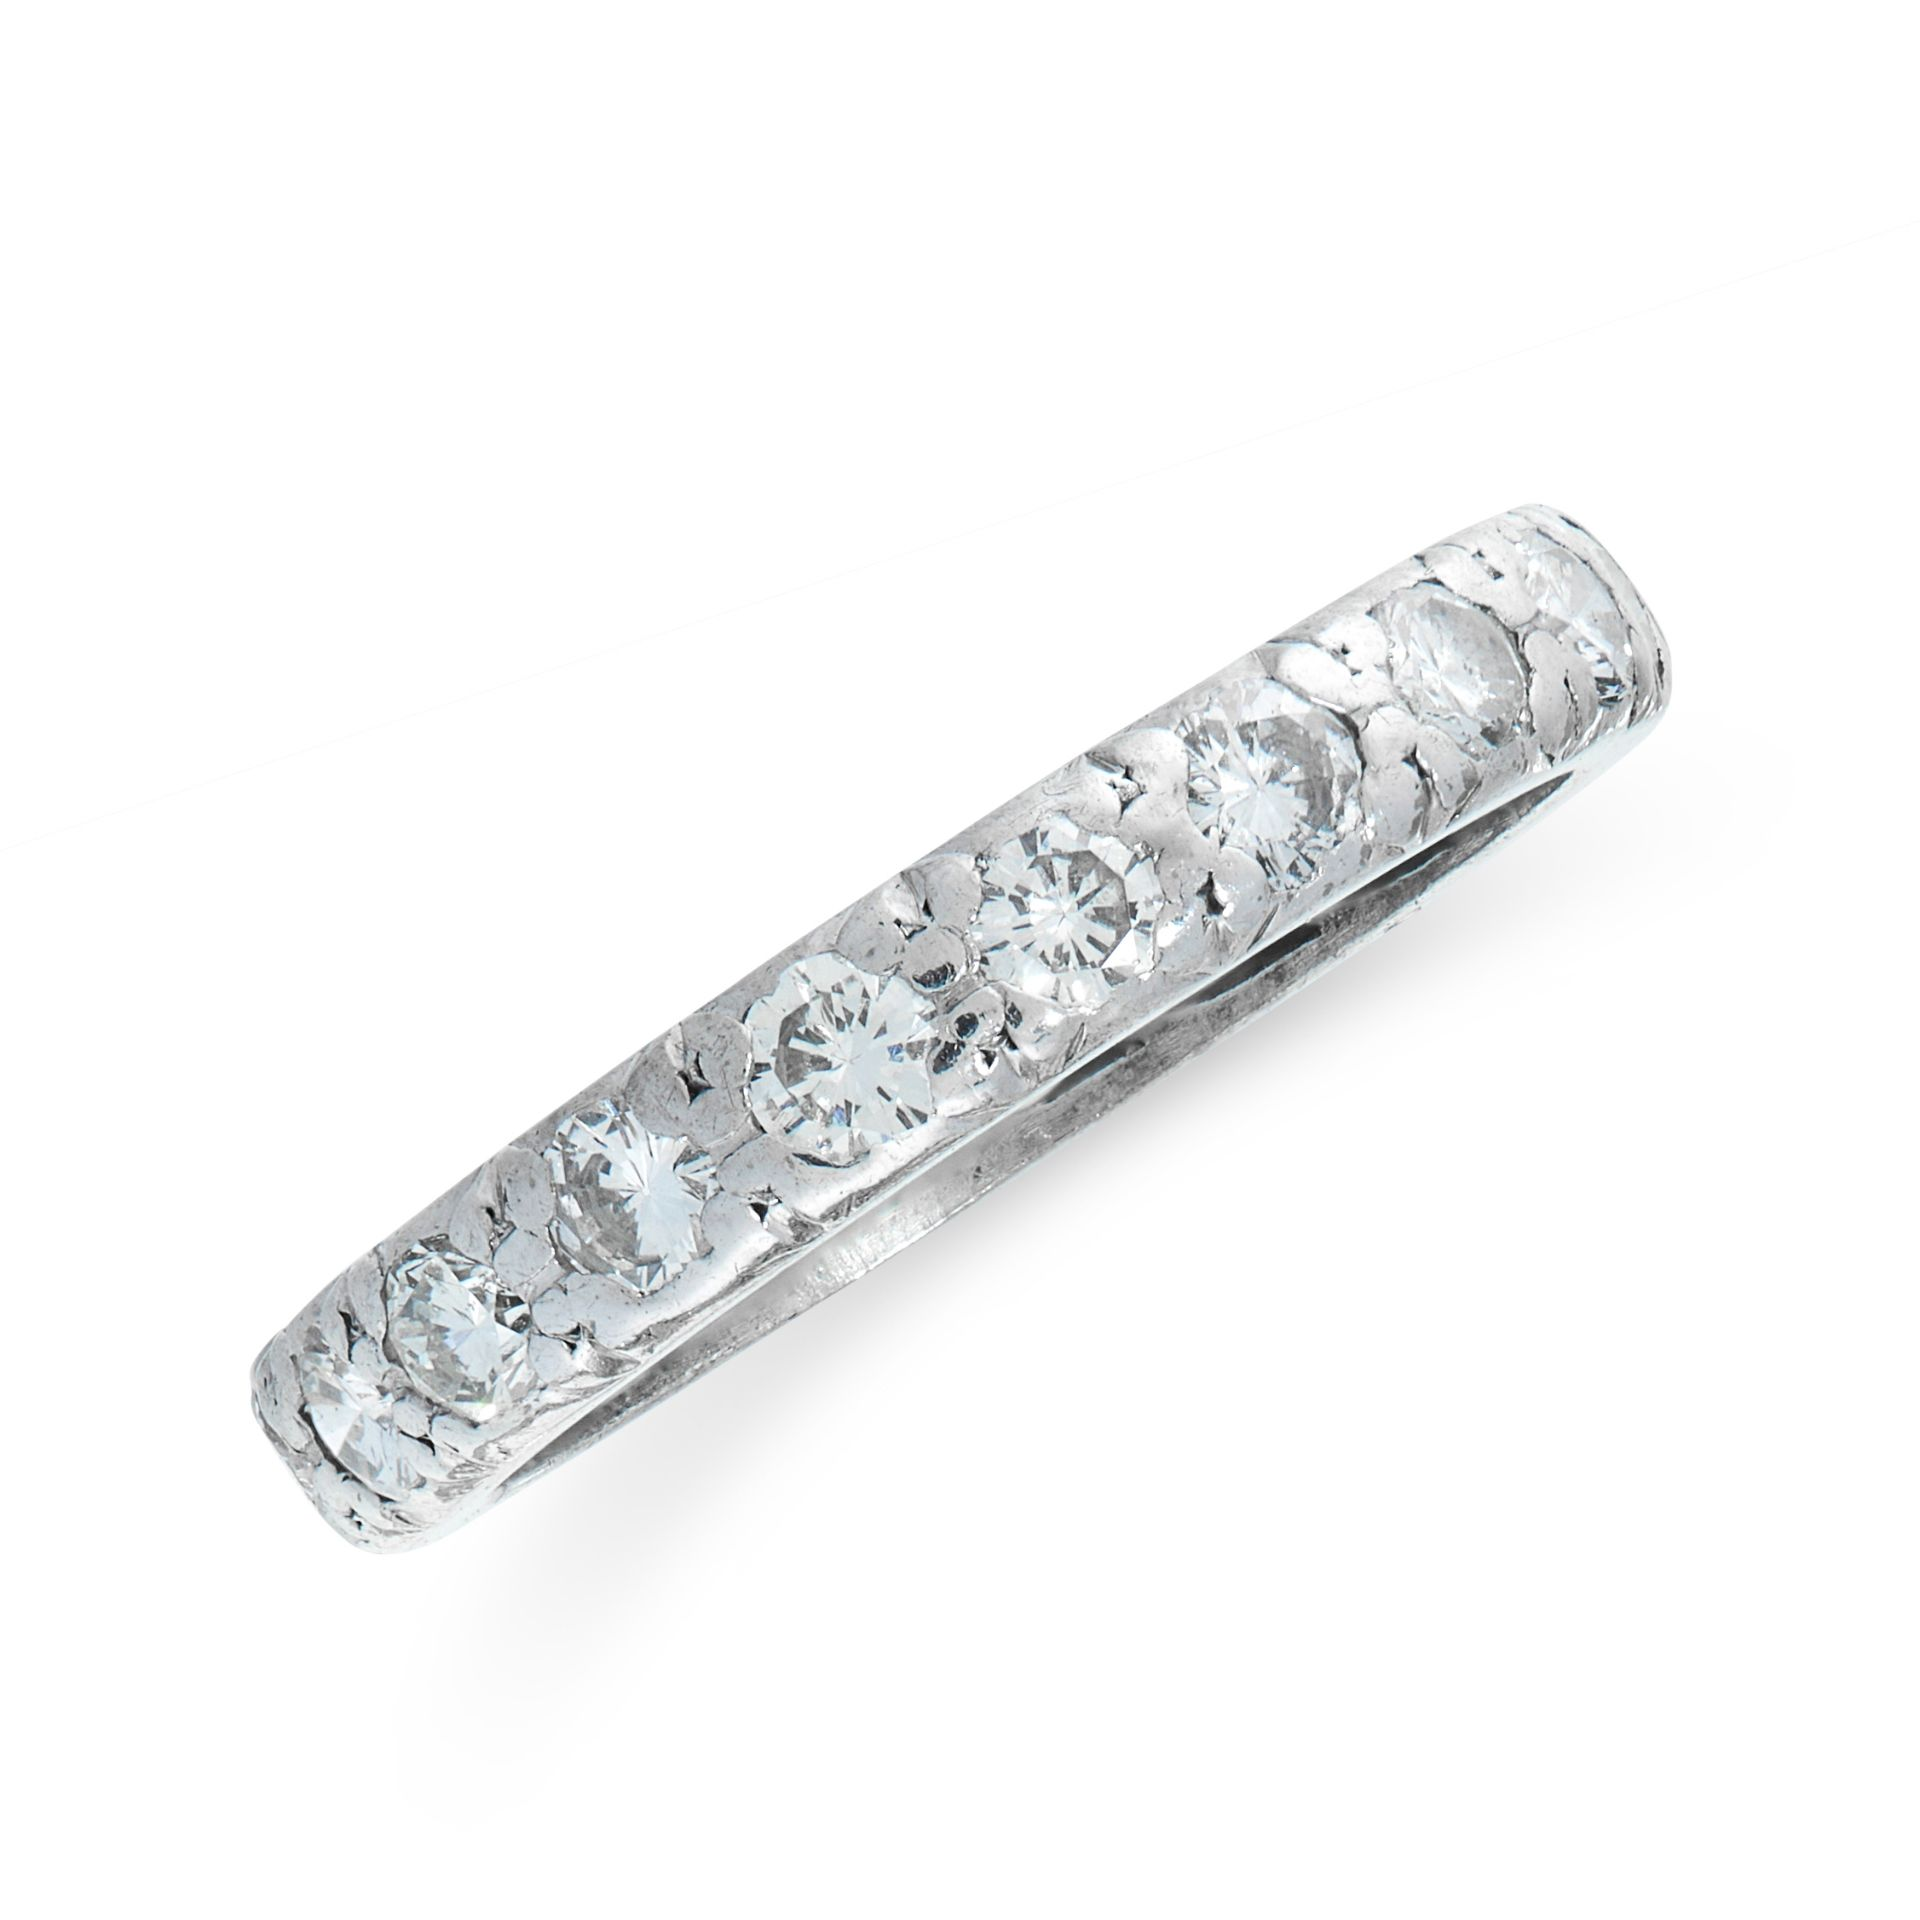 A DIAMOND ETERNITY RING the band set all around with a single row of round cut diamonds, all